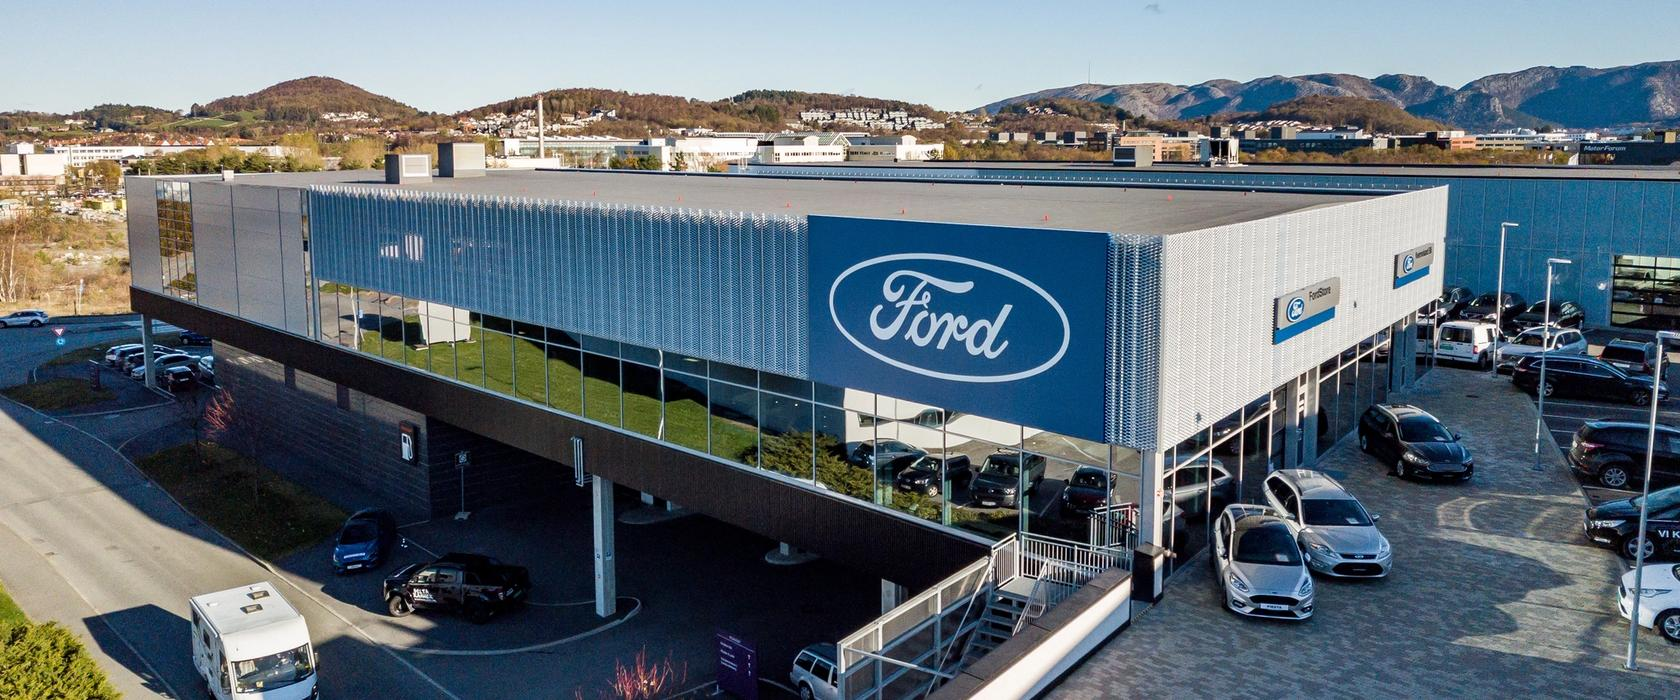 Bygget Ford Bilhuset holder til i.